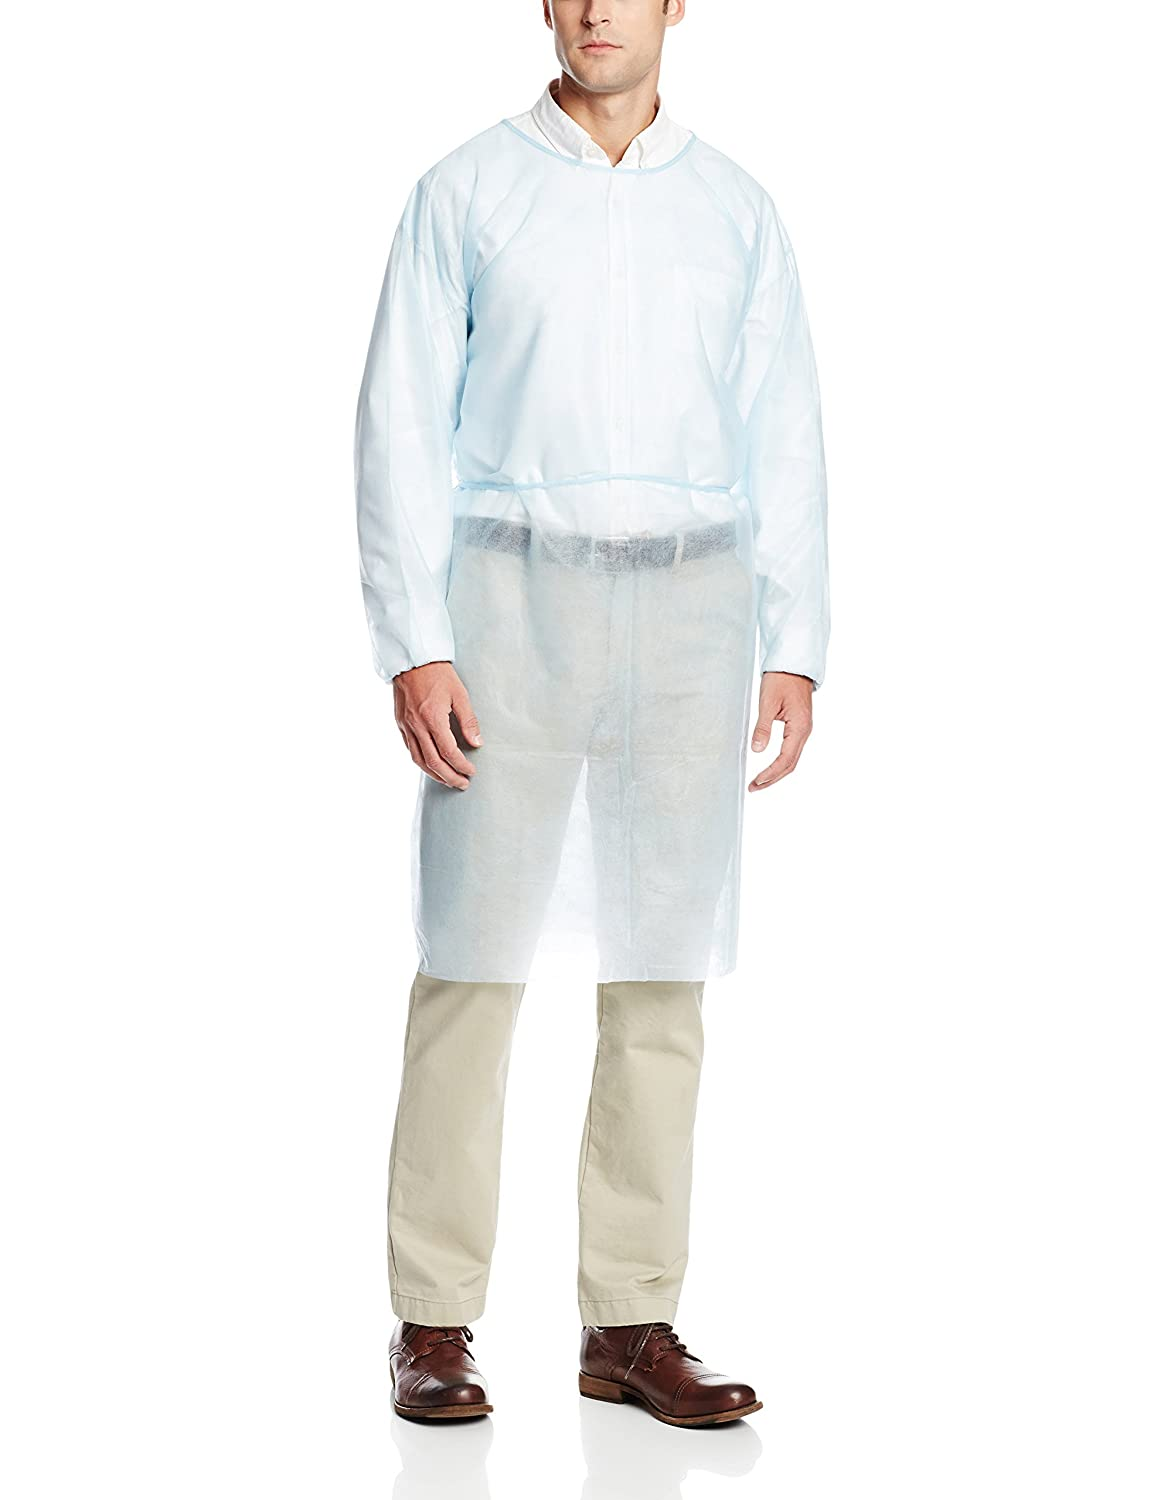 Protective Isolation Gown Clothing Overalls Isolation Suit Set Disposable Antistatic Dust Anti-virus Medical Splash Resistant